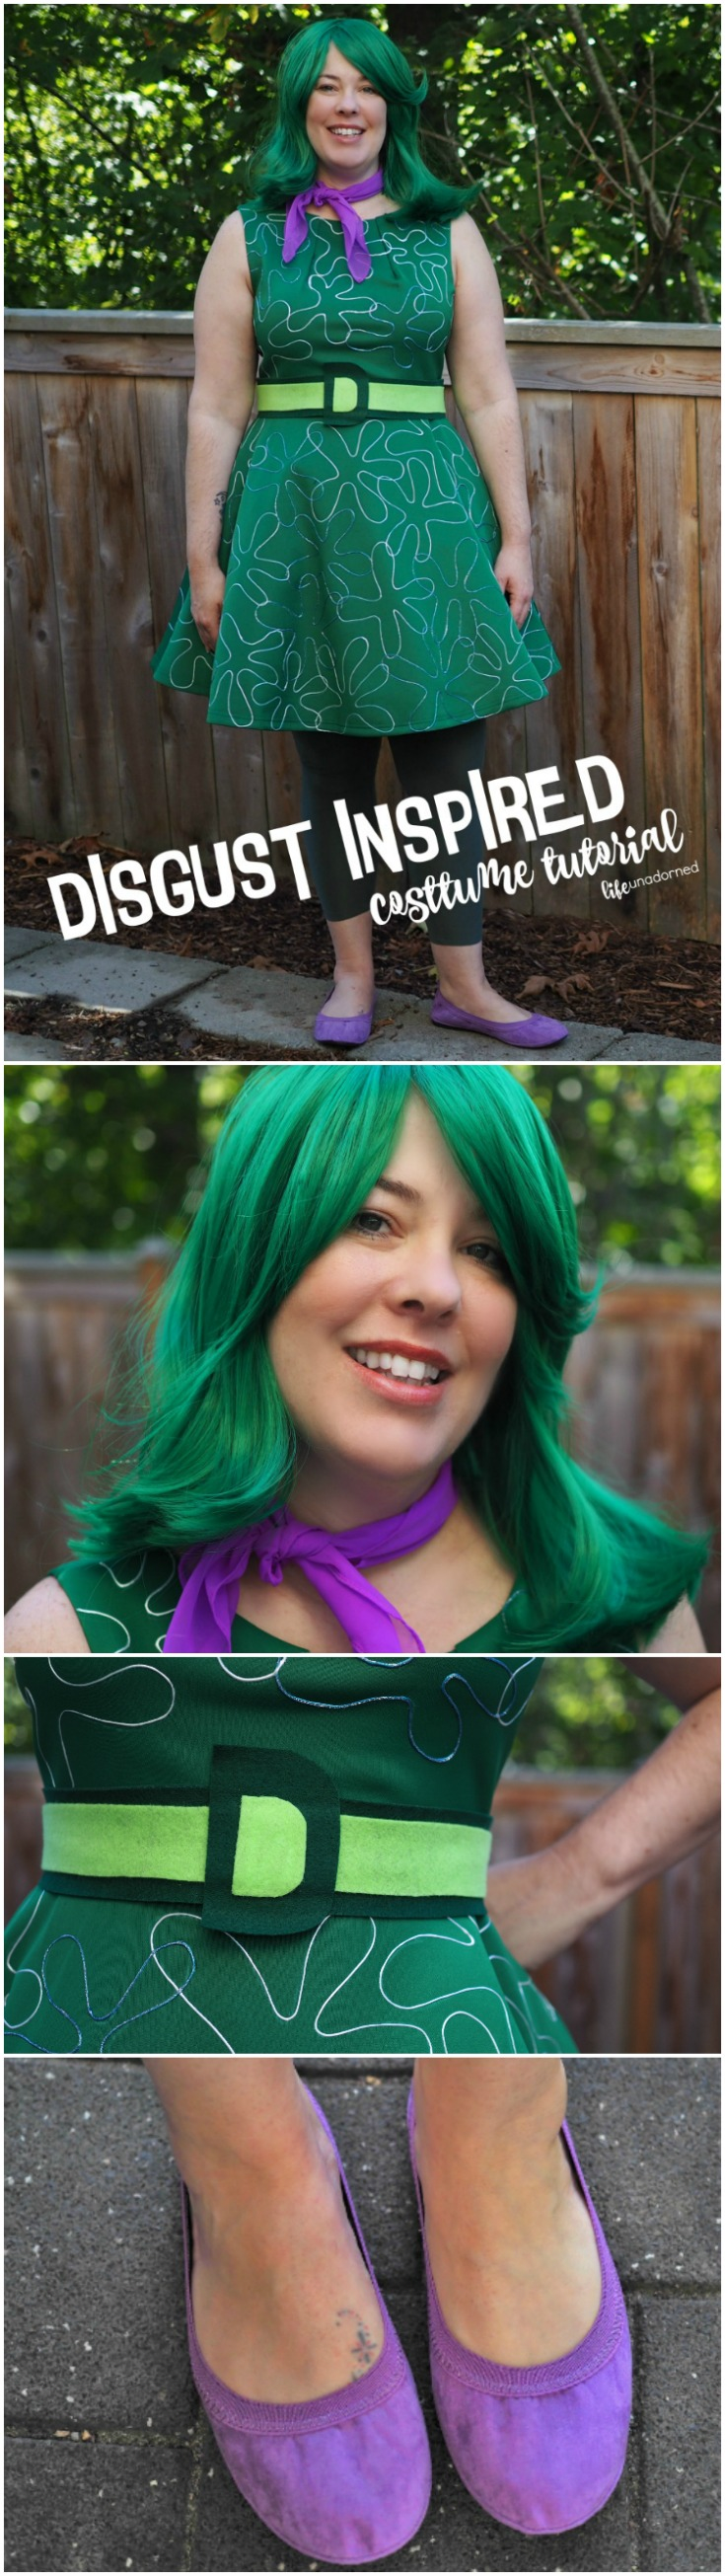 inside-out-disgust-inspired-costume-tutorial-diy-no-sew-cosplay